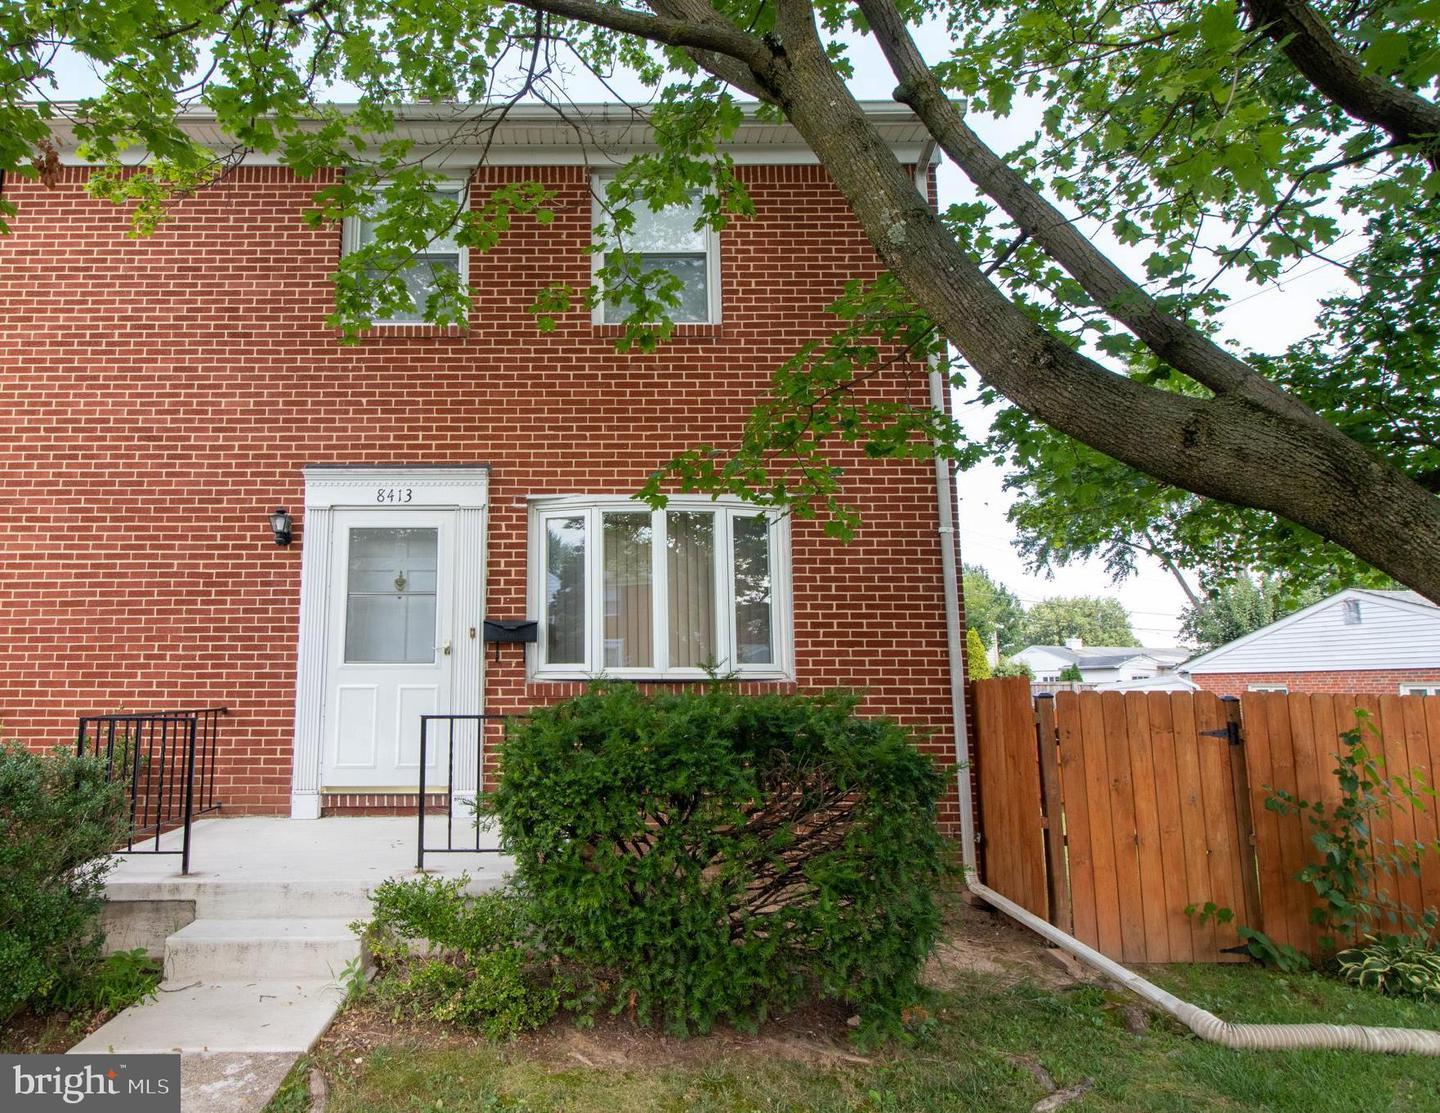 8413 Harris Ave, Baltimore, MD 21234 | Image 1 of 30 from carousel